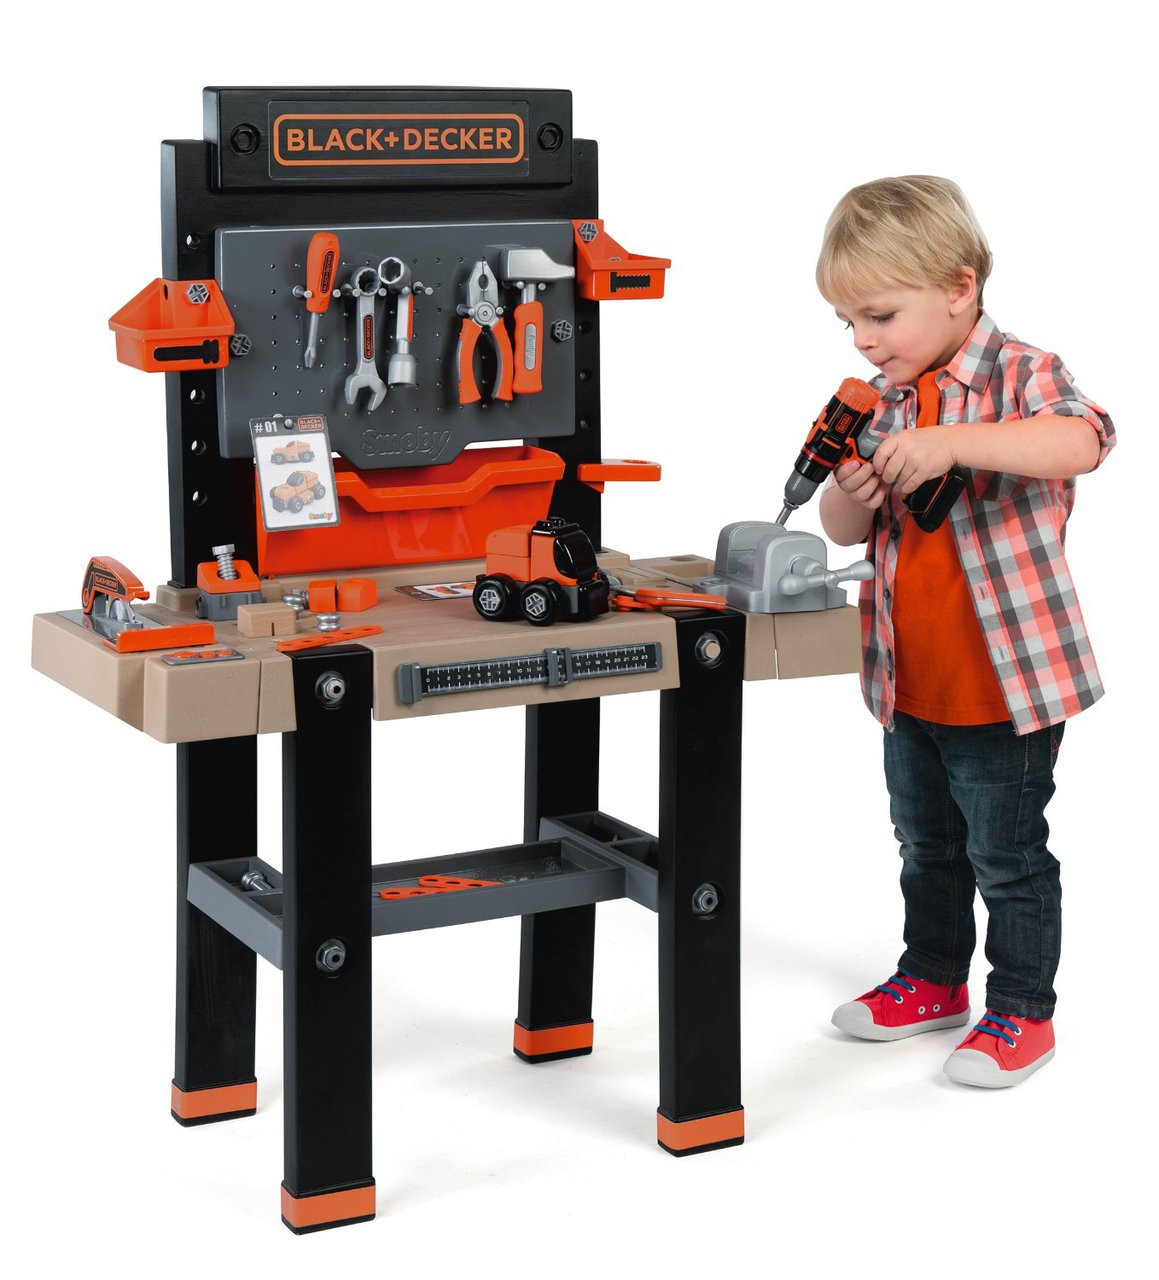 smoby ultimate black and decker kids bricolo play workbench. Black Bedroom Furniture Sets. Home Design Ideas